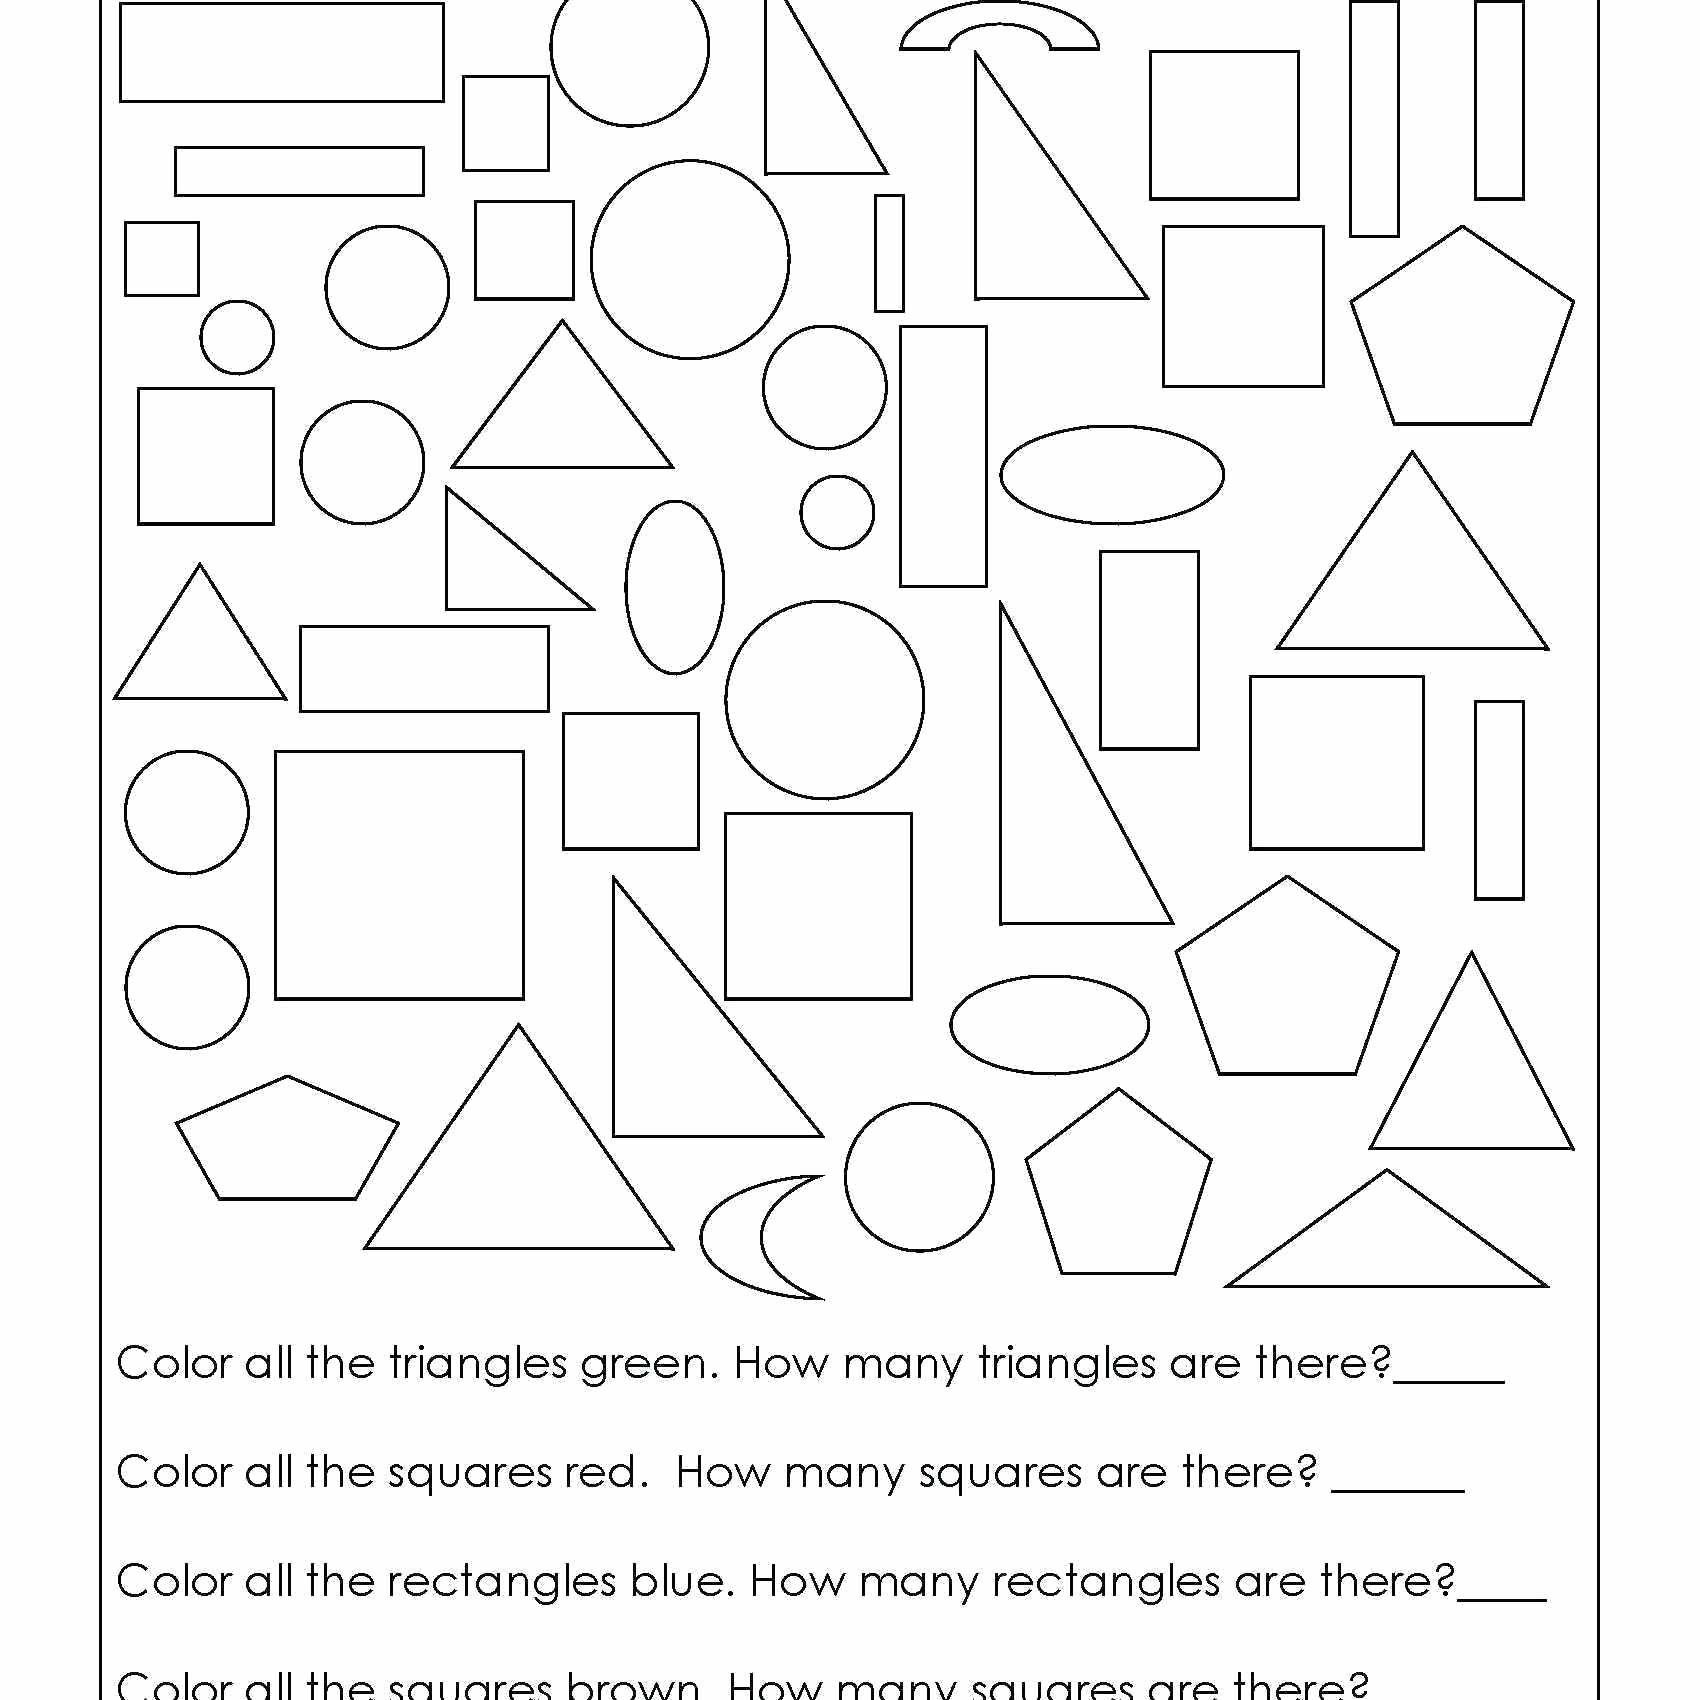 5 Free Math Worksheets Fourth Grade 4 Addition Adding Whole Tens 4 Addends Multiplication Wo Geometry Worksheets Free Math Worksheets 1st Grade Math Worksheets [ 1700 x 1700 Pixel ]